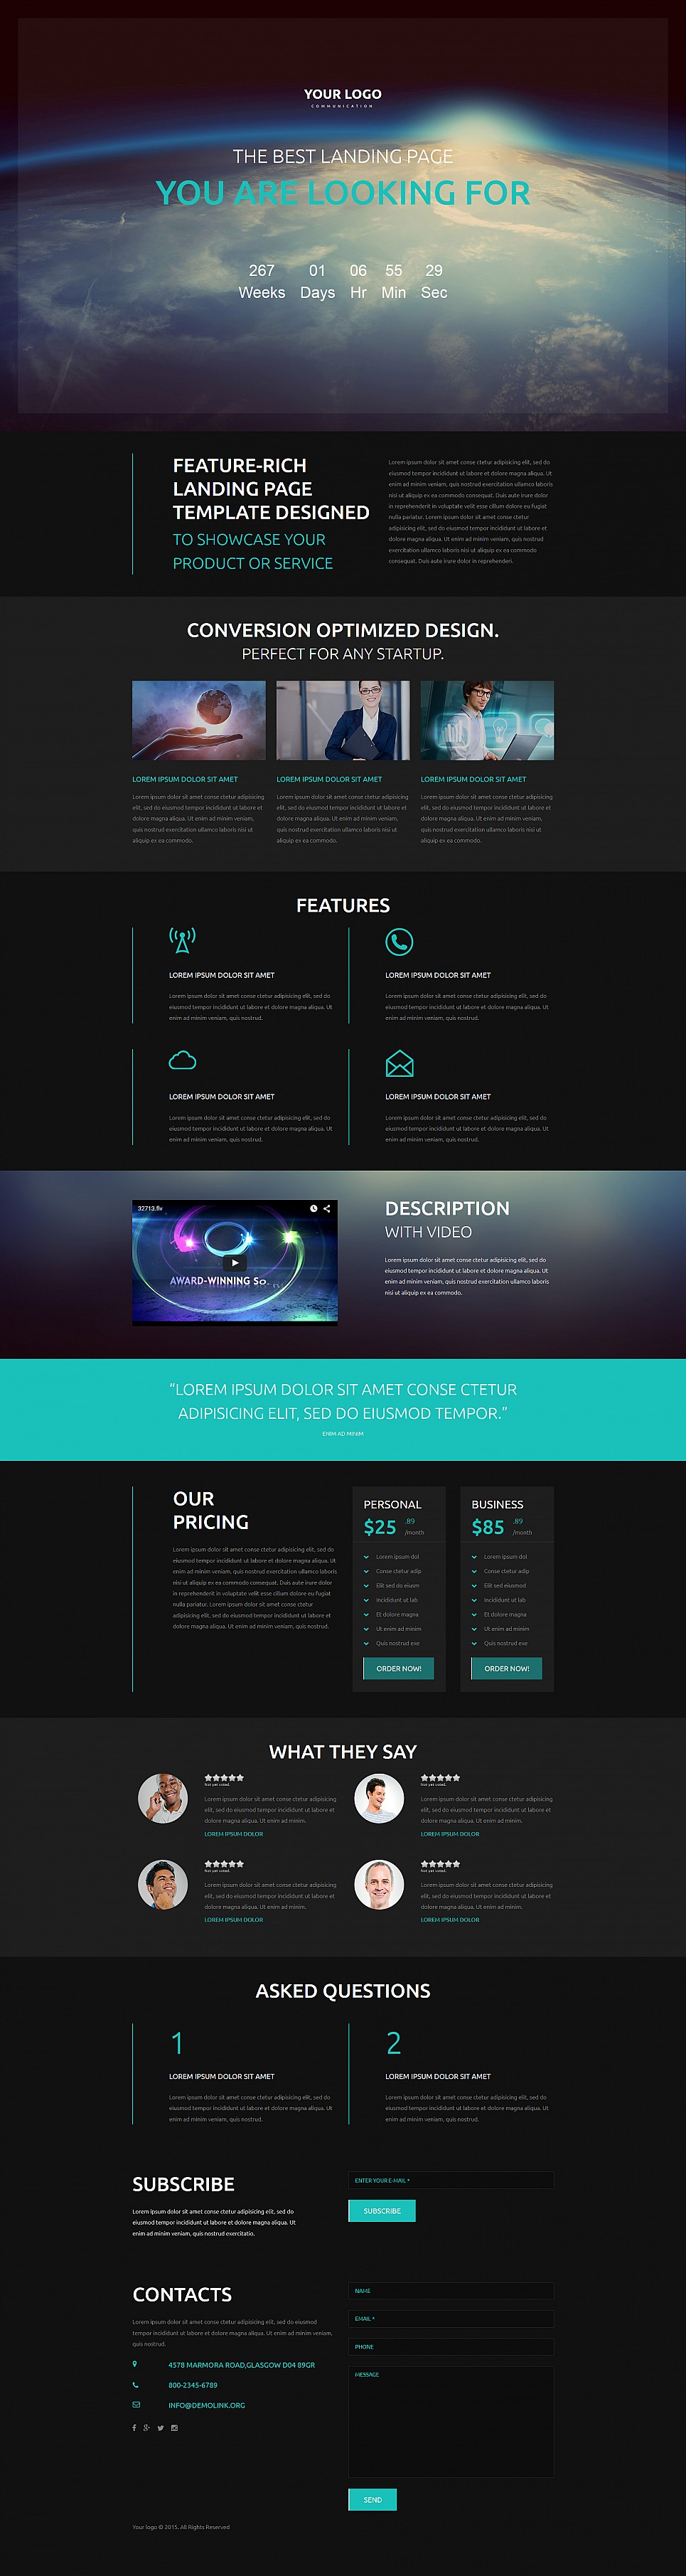 Cosmic website template for businessmen